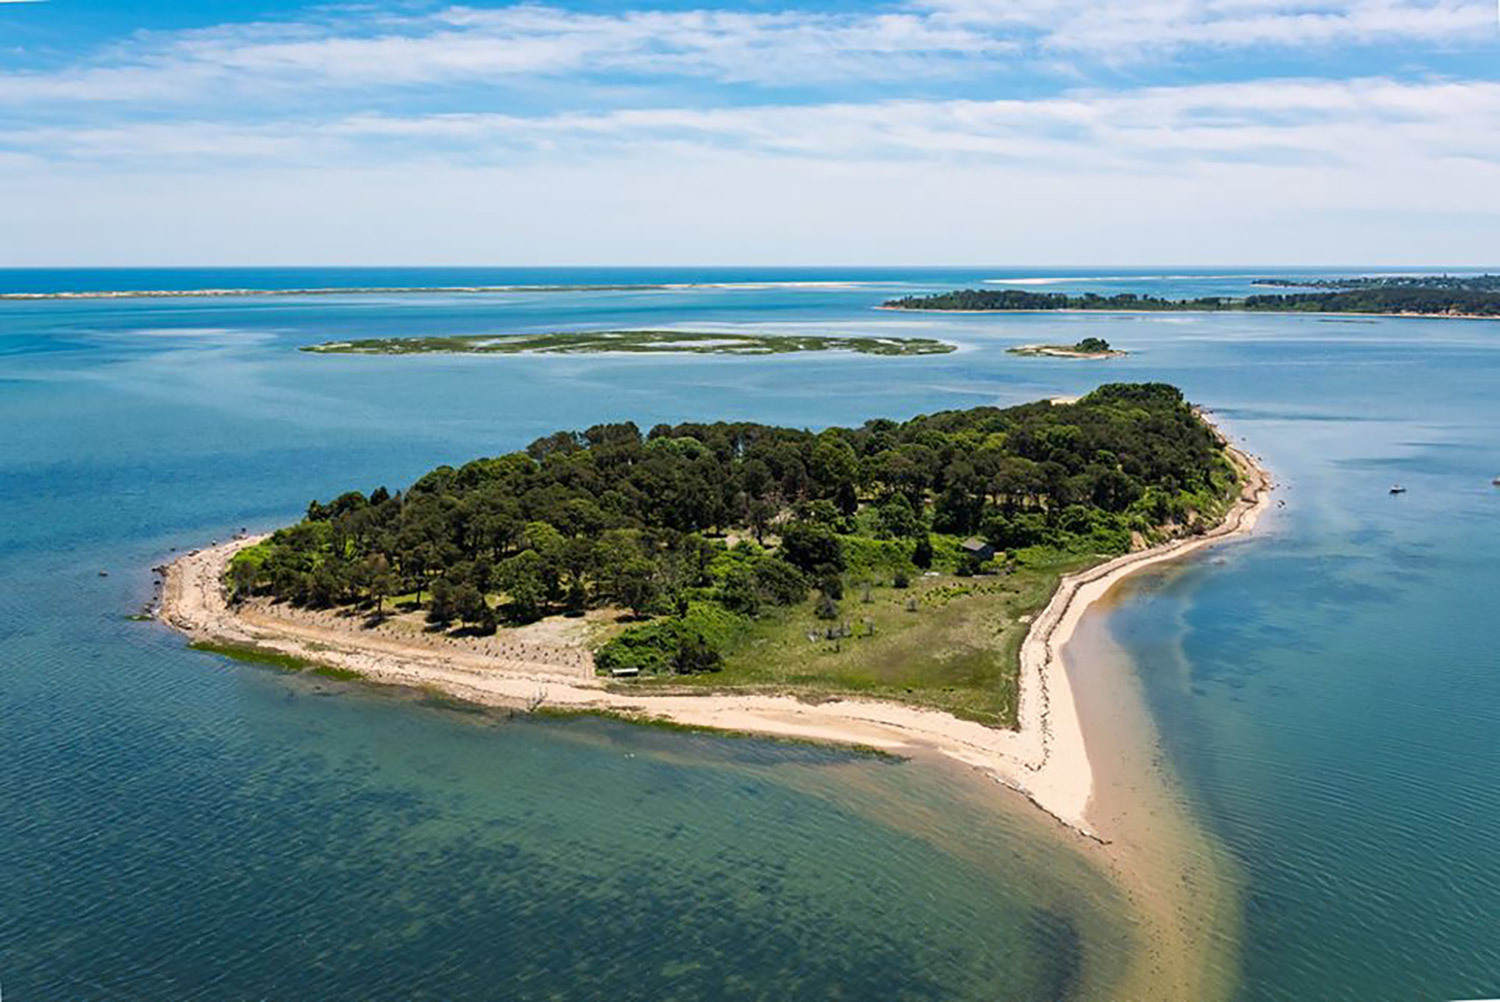 You can visit this private island off the coast of Cape Cod for the first time in 300 years